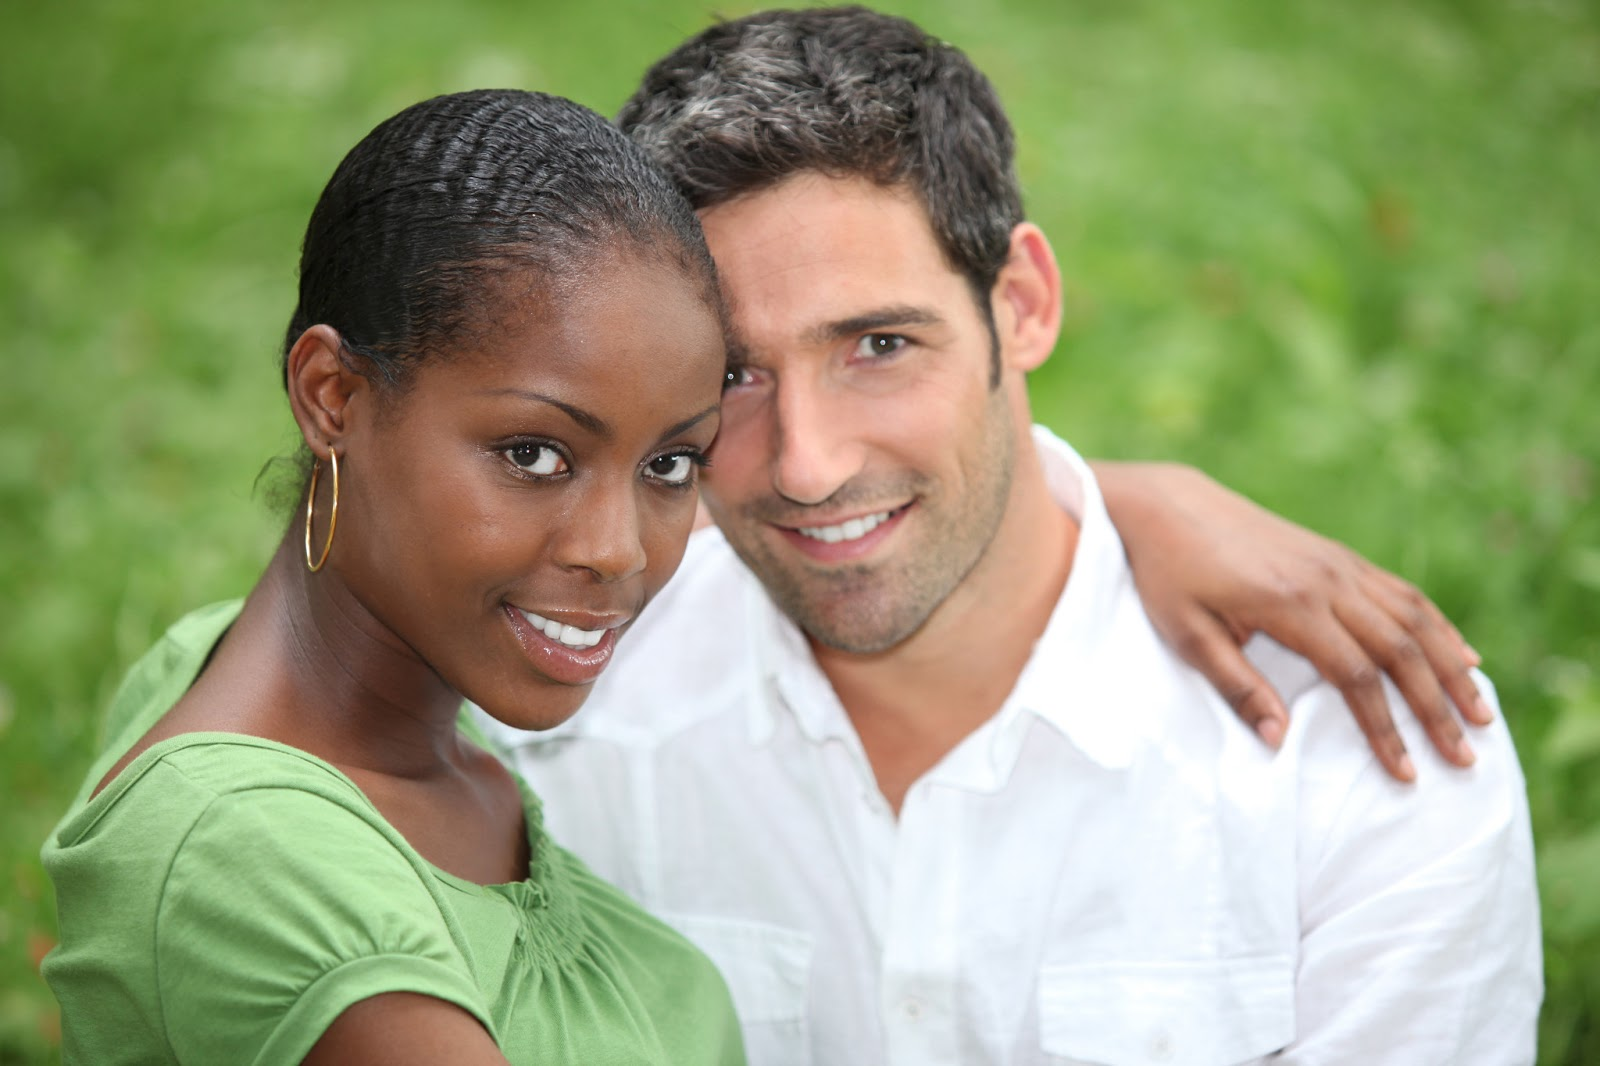 edgar black dating site Find hot black singles for fun adult dating at blackshagbookcom search millions of black singles looking to date black shagbook ® black dating sites: - uk.